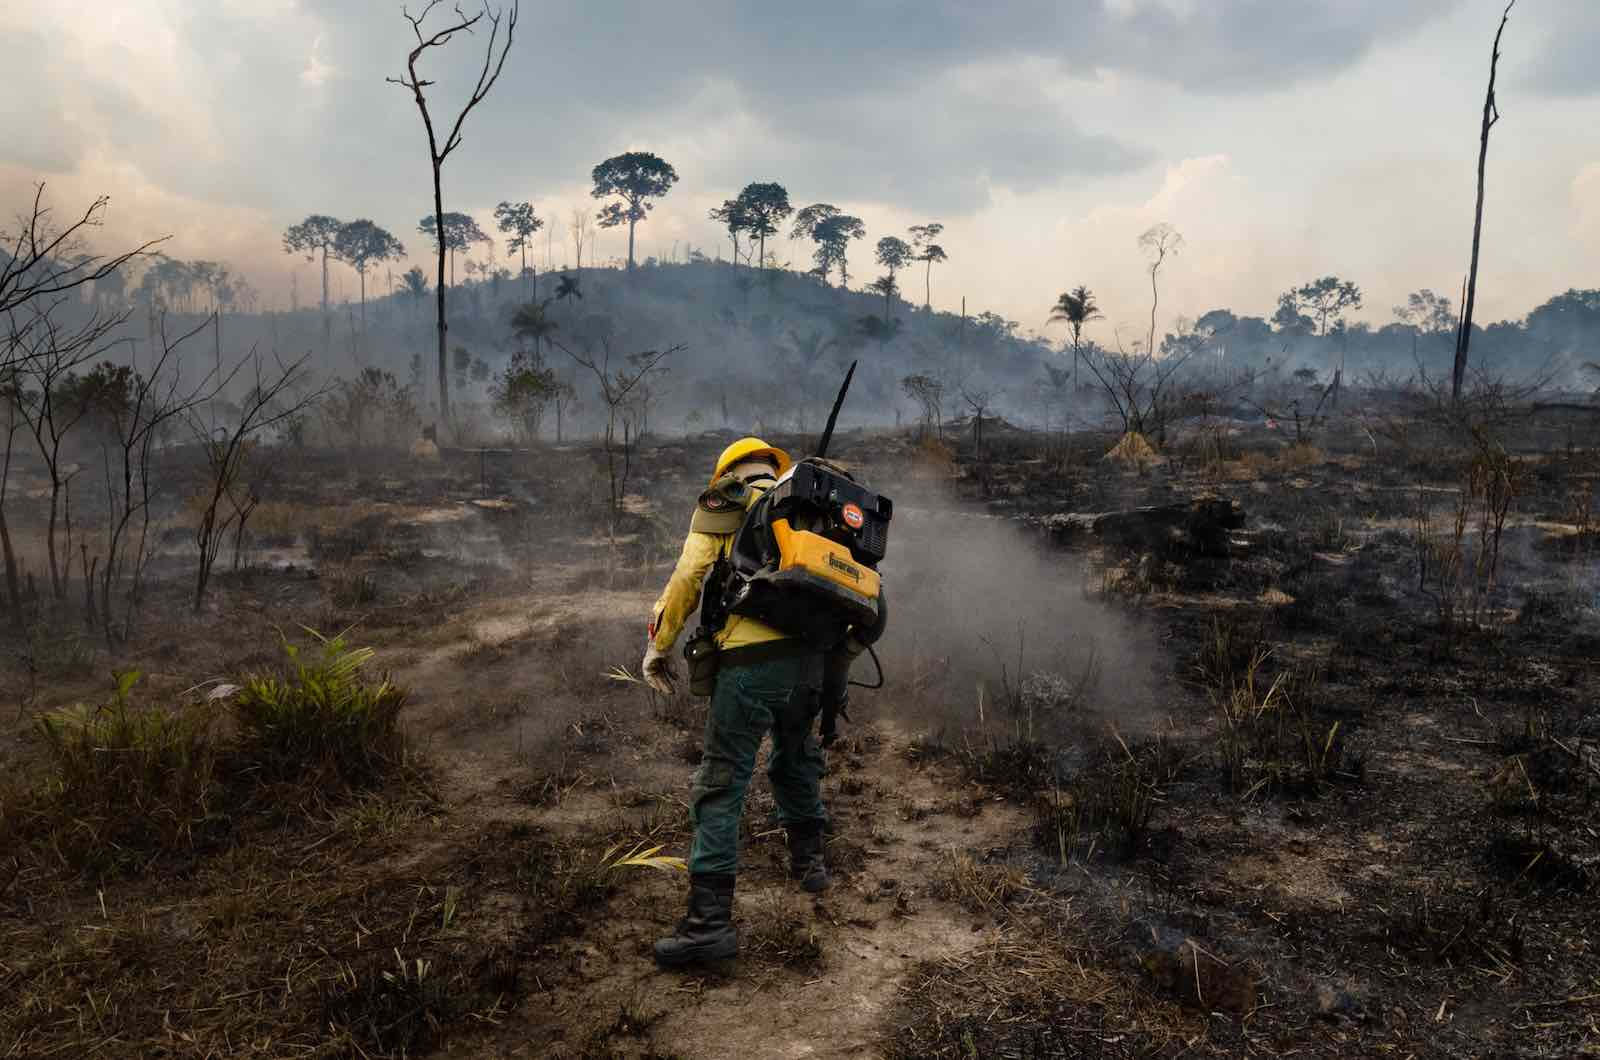 A member of the forest fire brigade fights burning in the Amazon, in Para state, northern Brazil,  September 2019 (Gustavo Basso/NurPhoto via Getty Images)